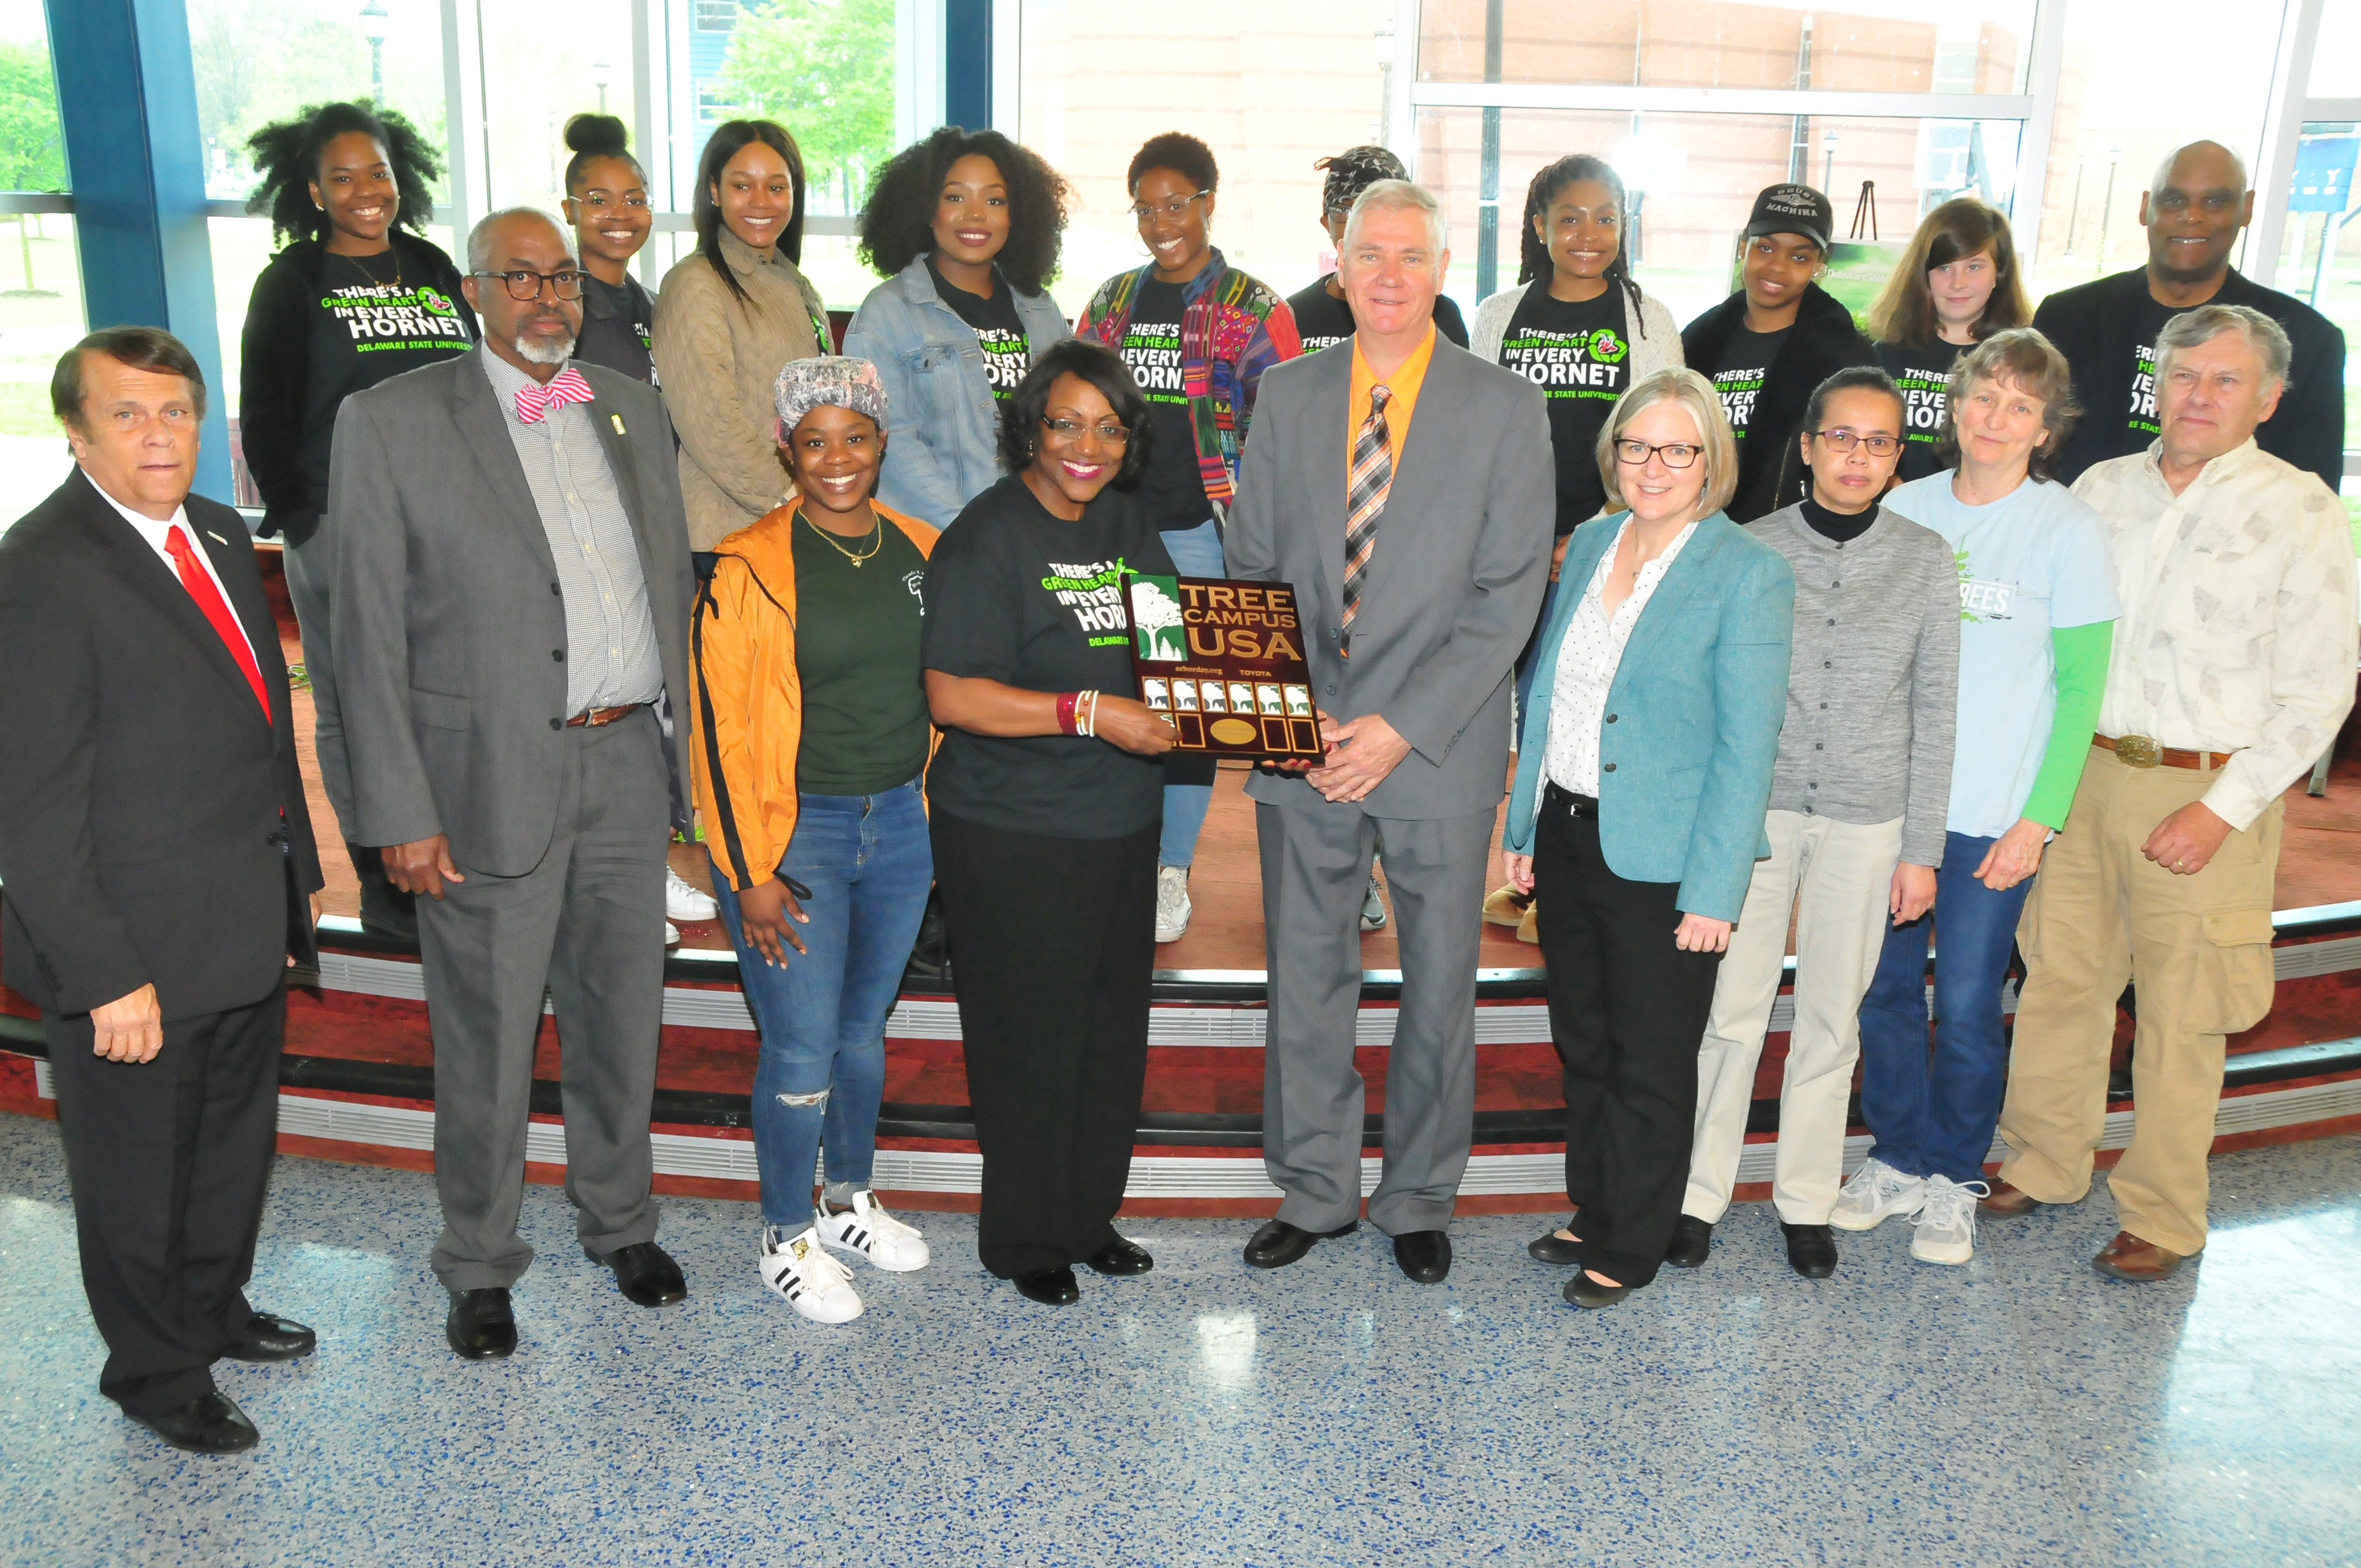 Dr. Vita Pickrum (center) receives the Tree Campus USA renewal designation on behalf of DSU from Dr. Michael Valenti, Delaware state forester. They are flanked by other DSU officials and Roteract and Interact student organizations.